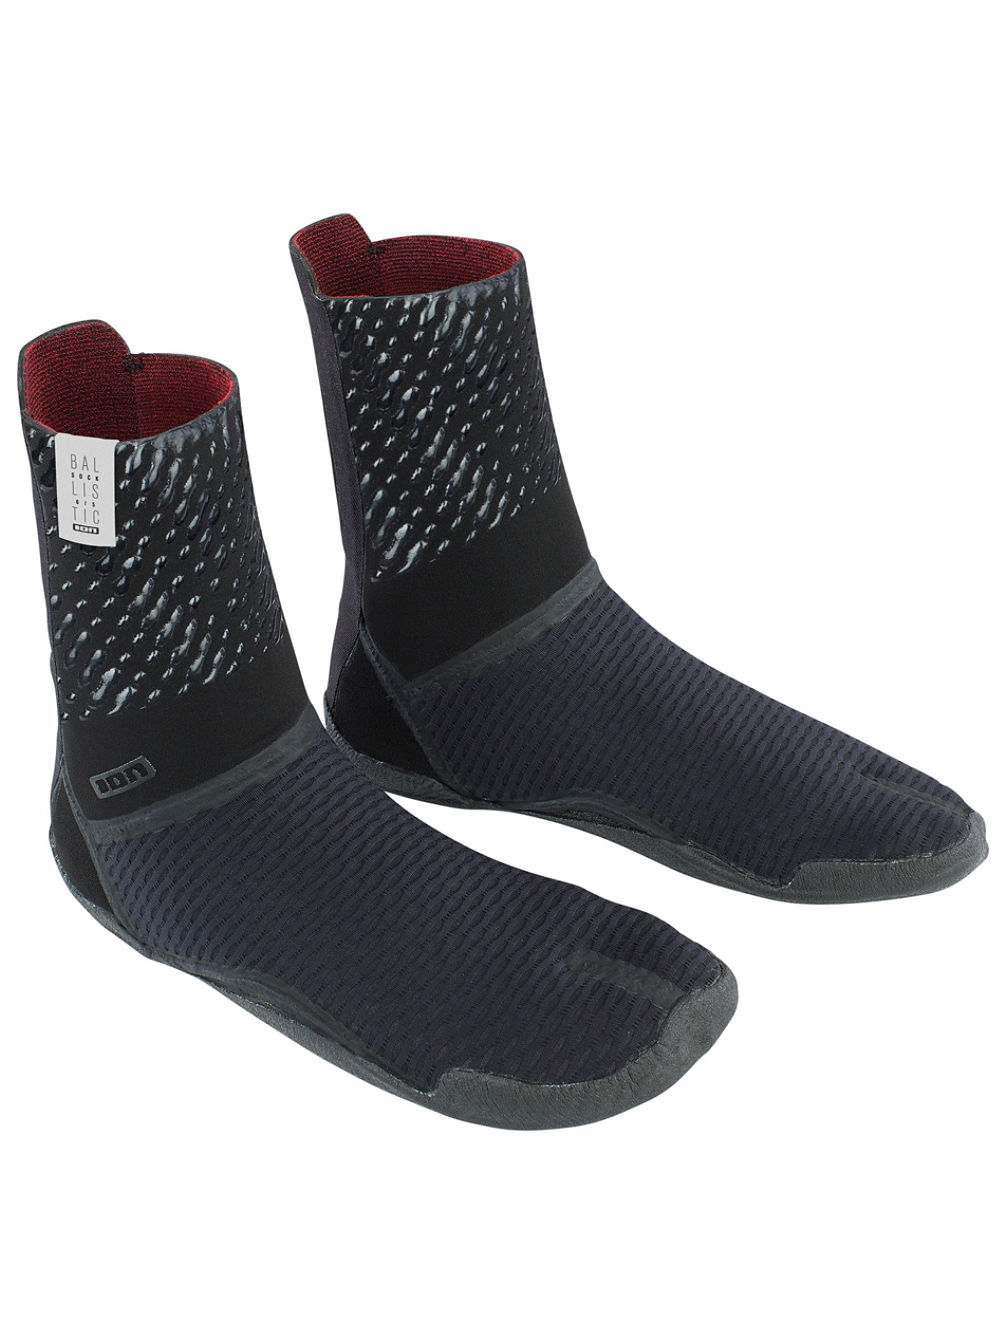 Ballistic Socks 3/2 IS Booties